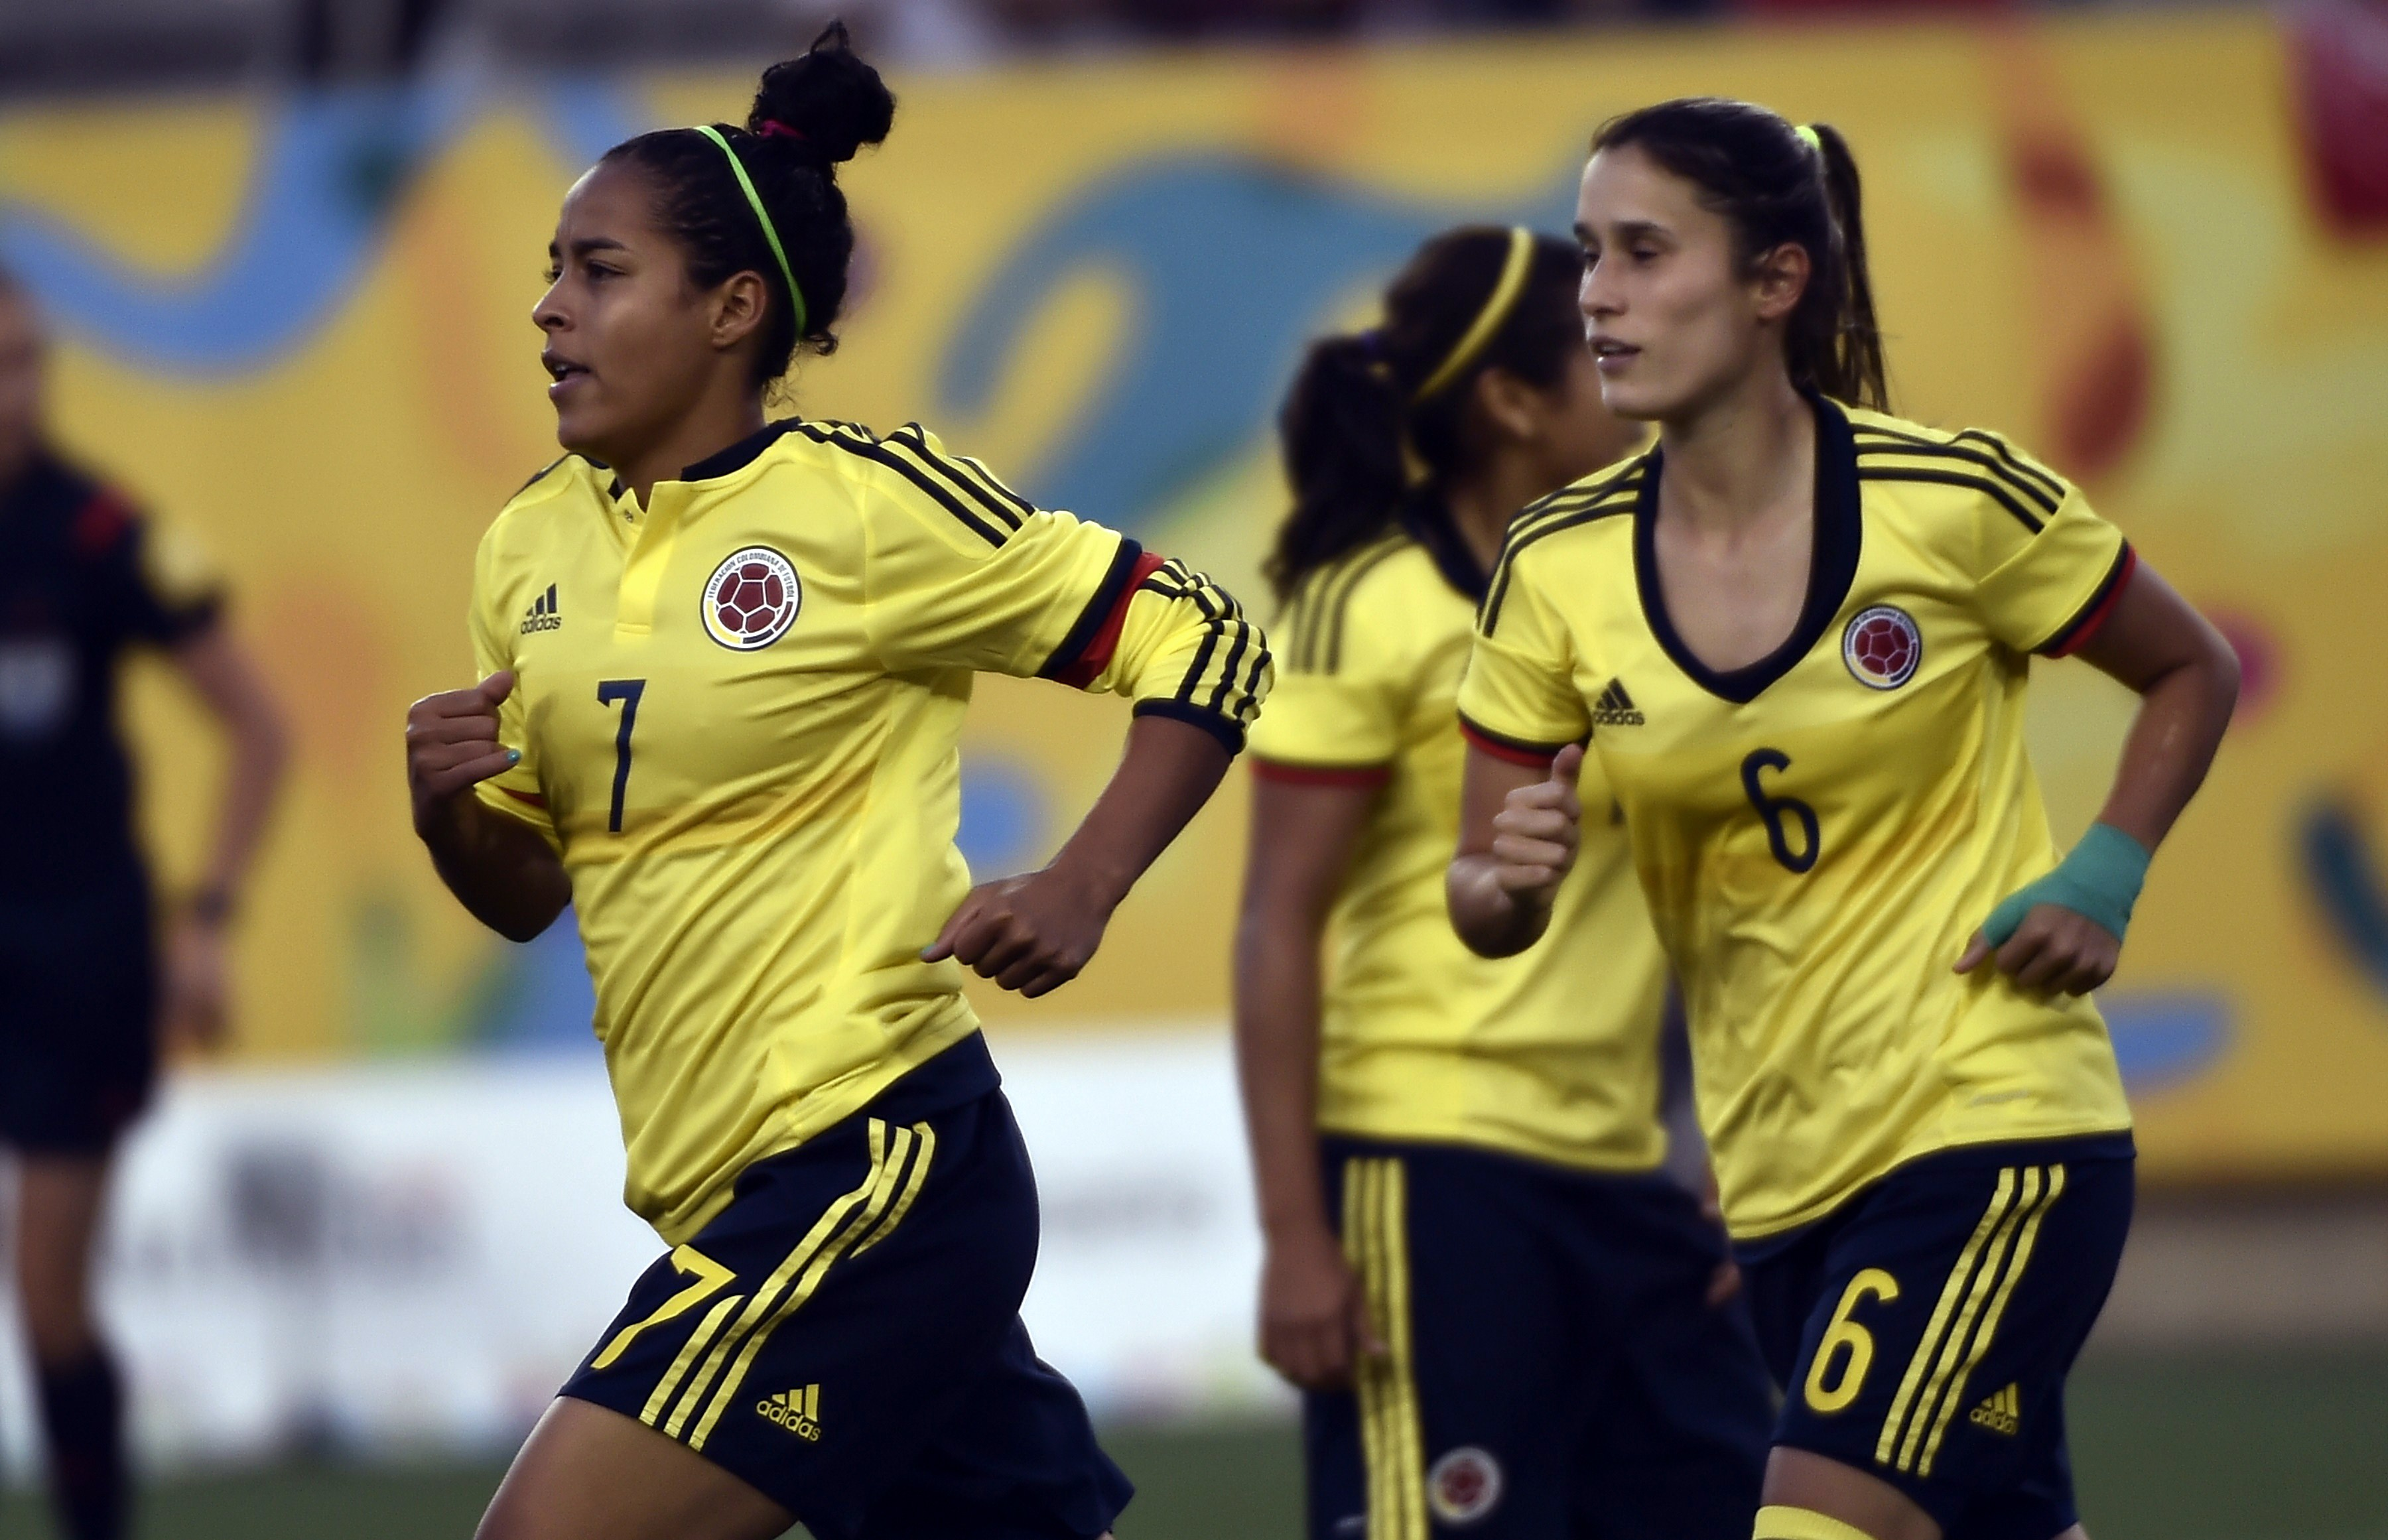 france vs colombia womens soccer stream, france colombia soccer stream, france womens soccer stream, france colombia stream, olympics soccer stream, summer olympics live streaming,